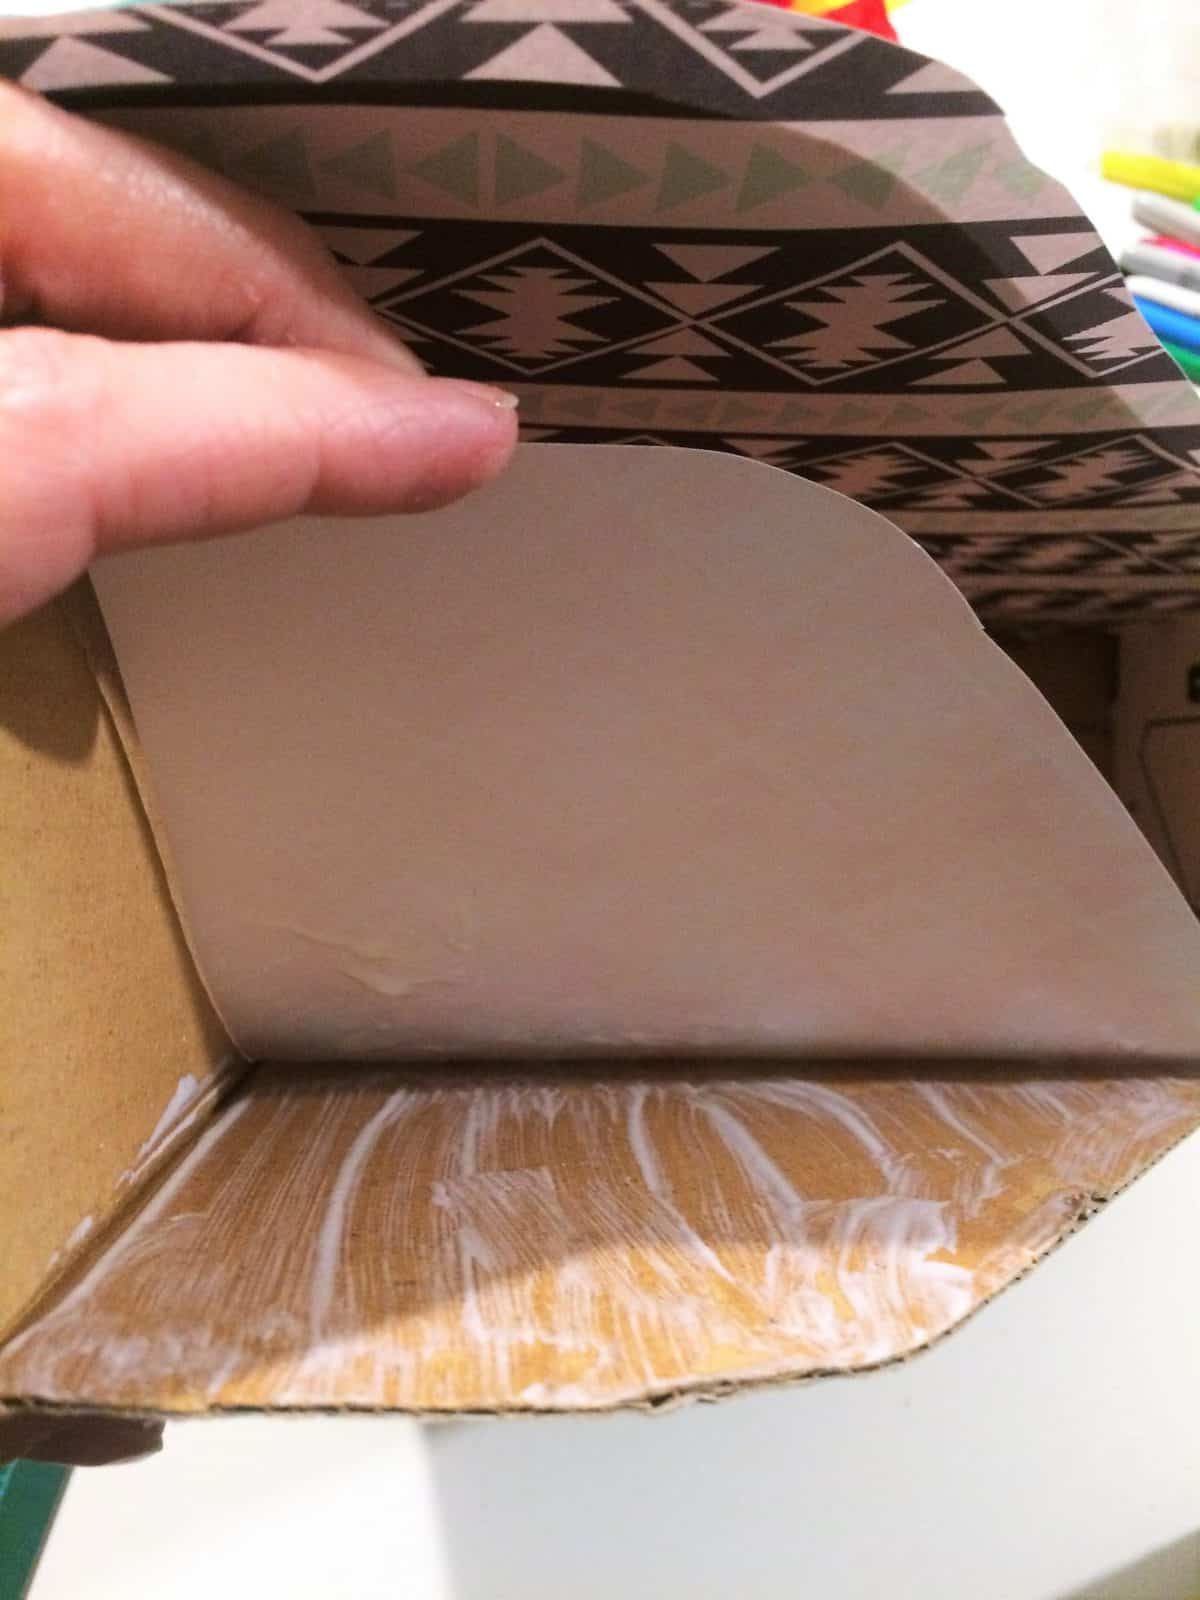 Glue in sections inside first press down paper.